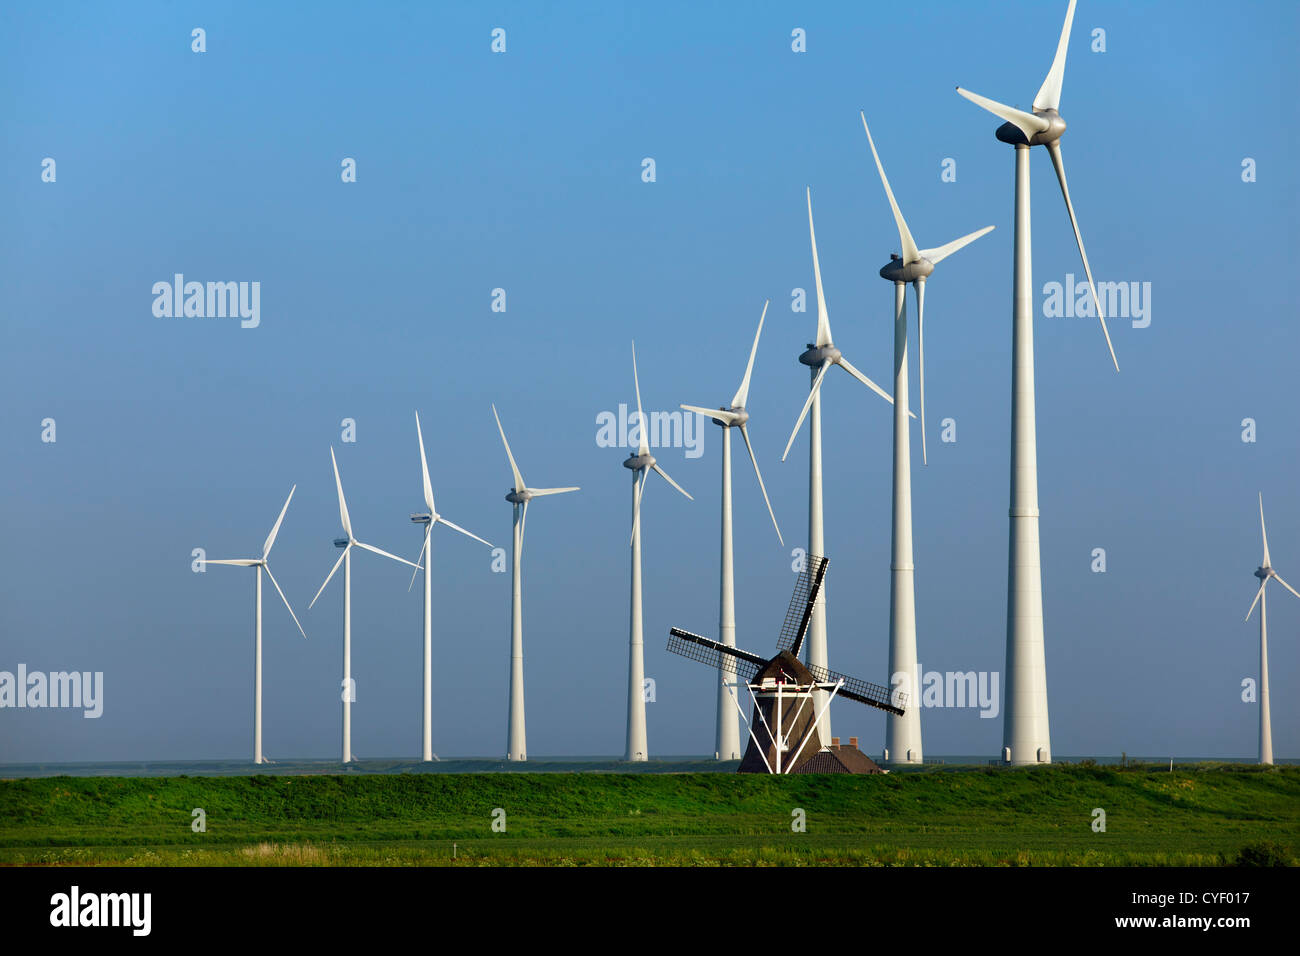 The Netherlands, Eemsmond, Eemshaven,  Windturbines and traditional windmill. - Stock Image